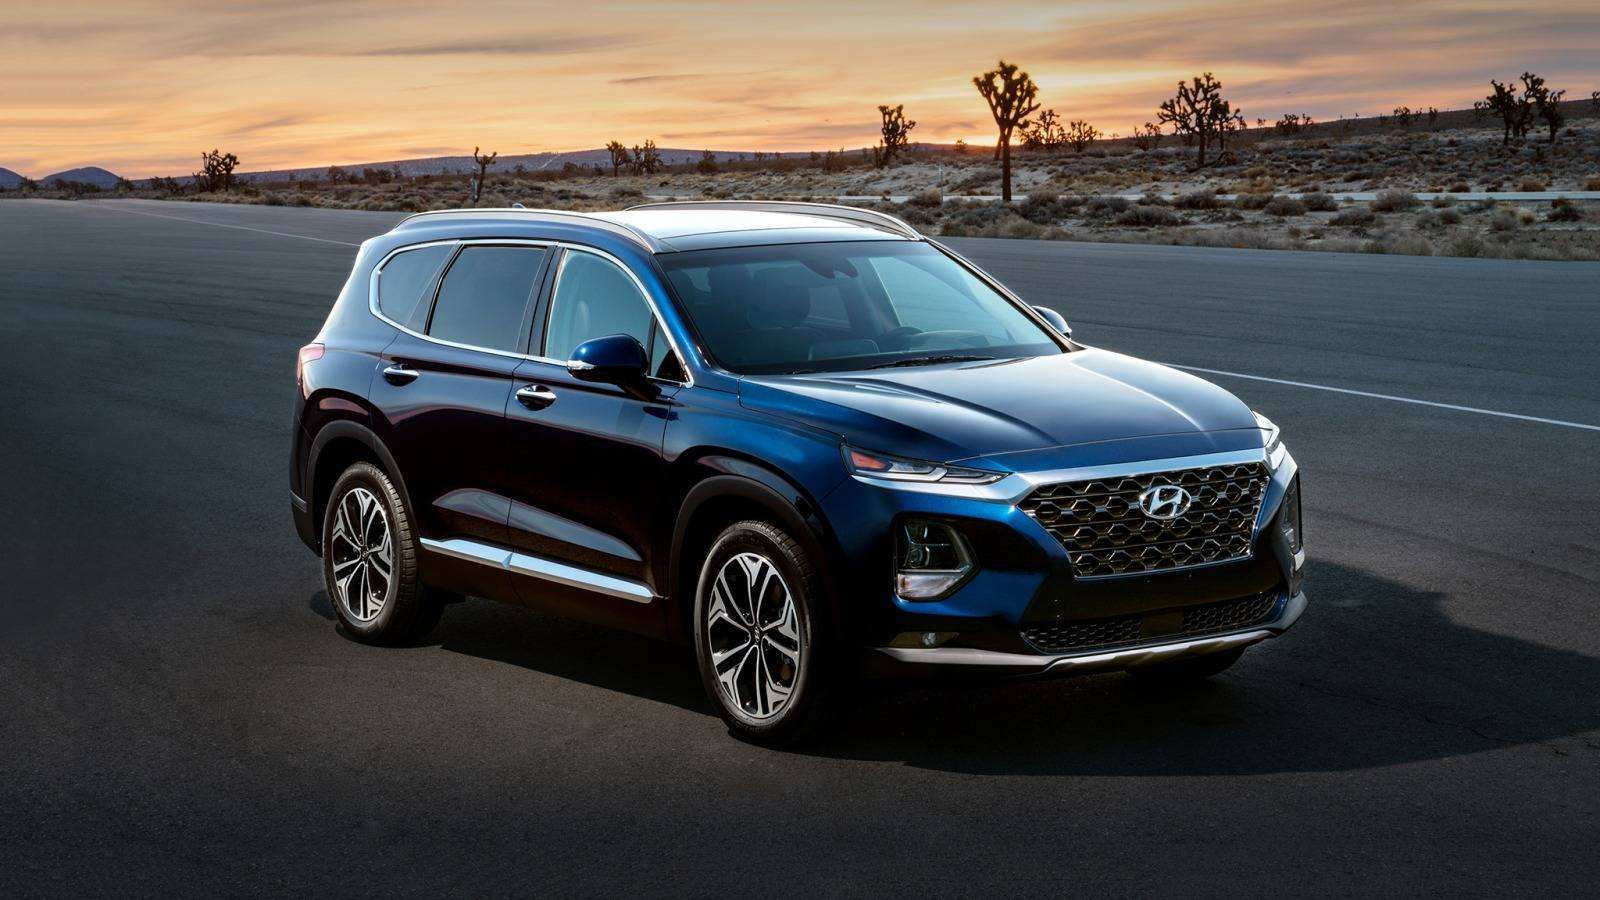 76 All New 2019 Hyundai Santa Fe Sport Redesign Price And Review